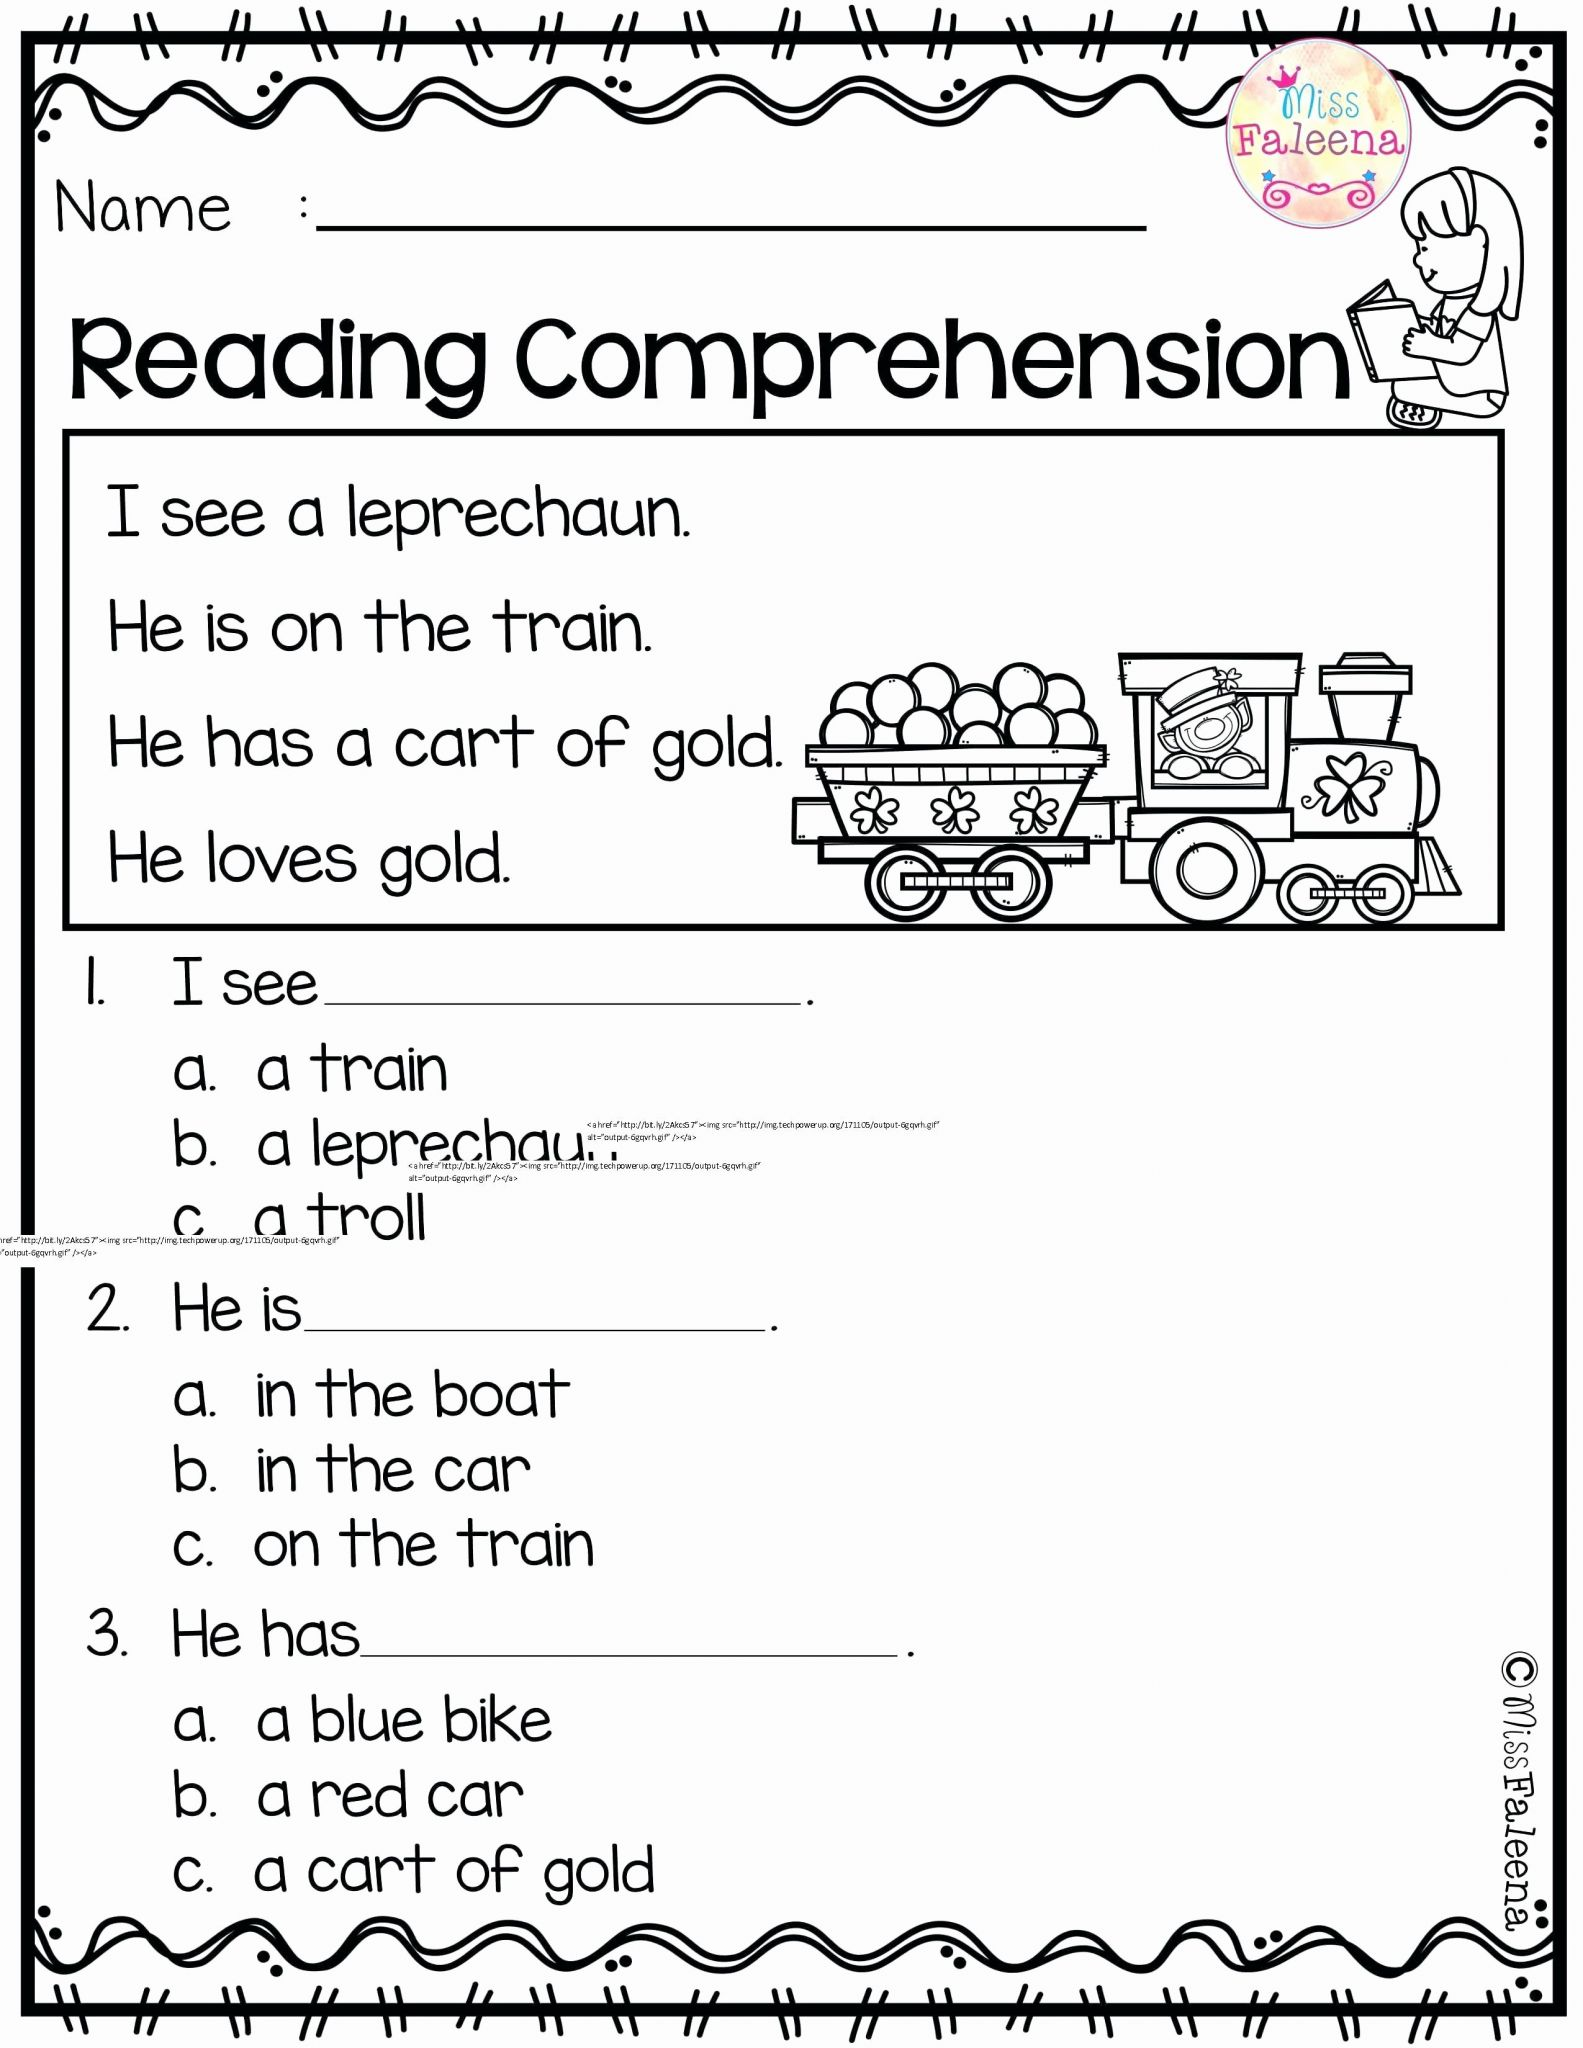 Prehension Reading Worksheet